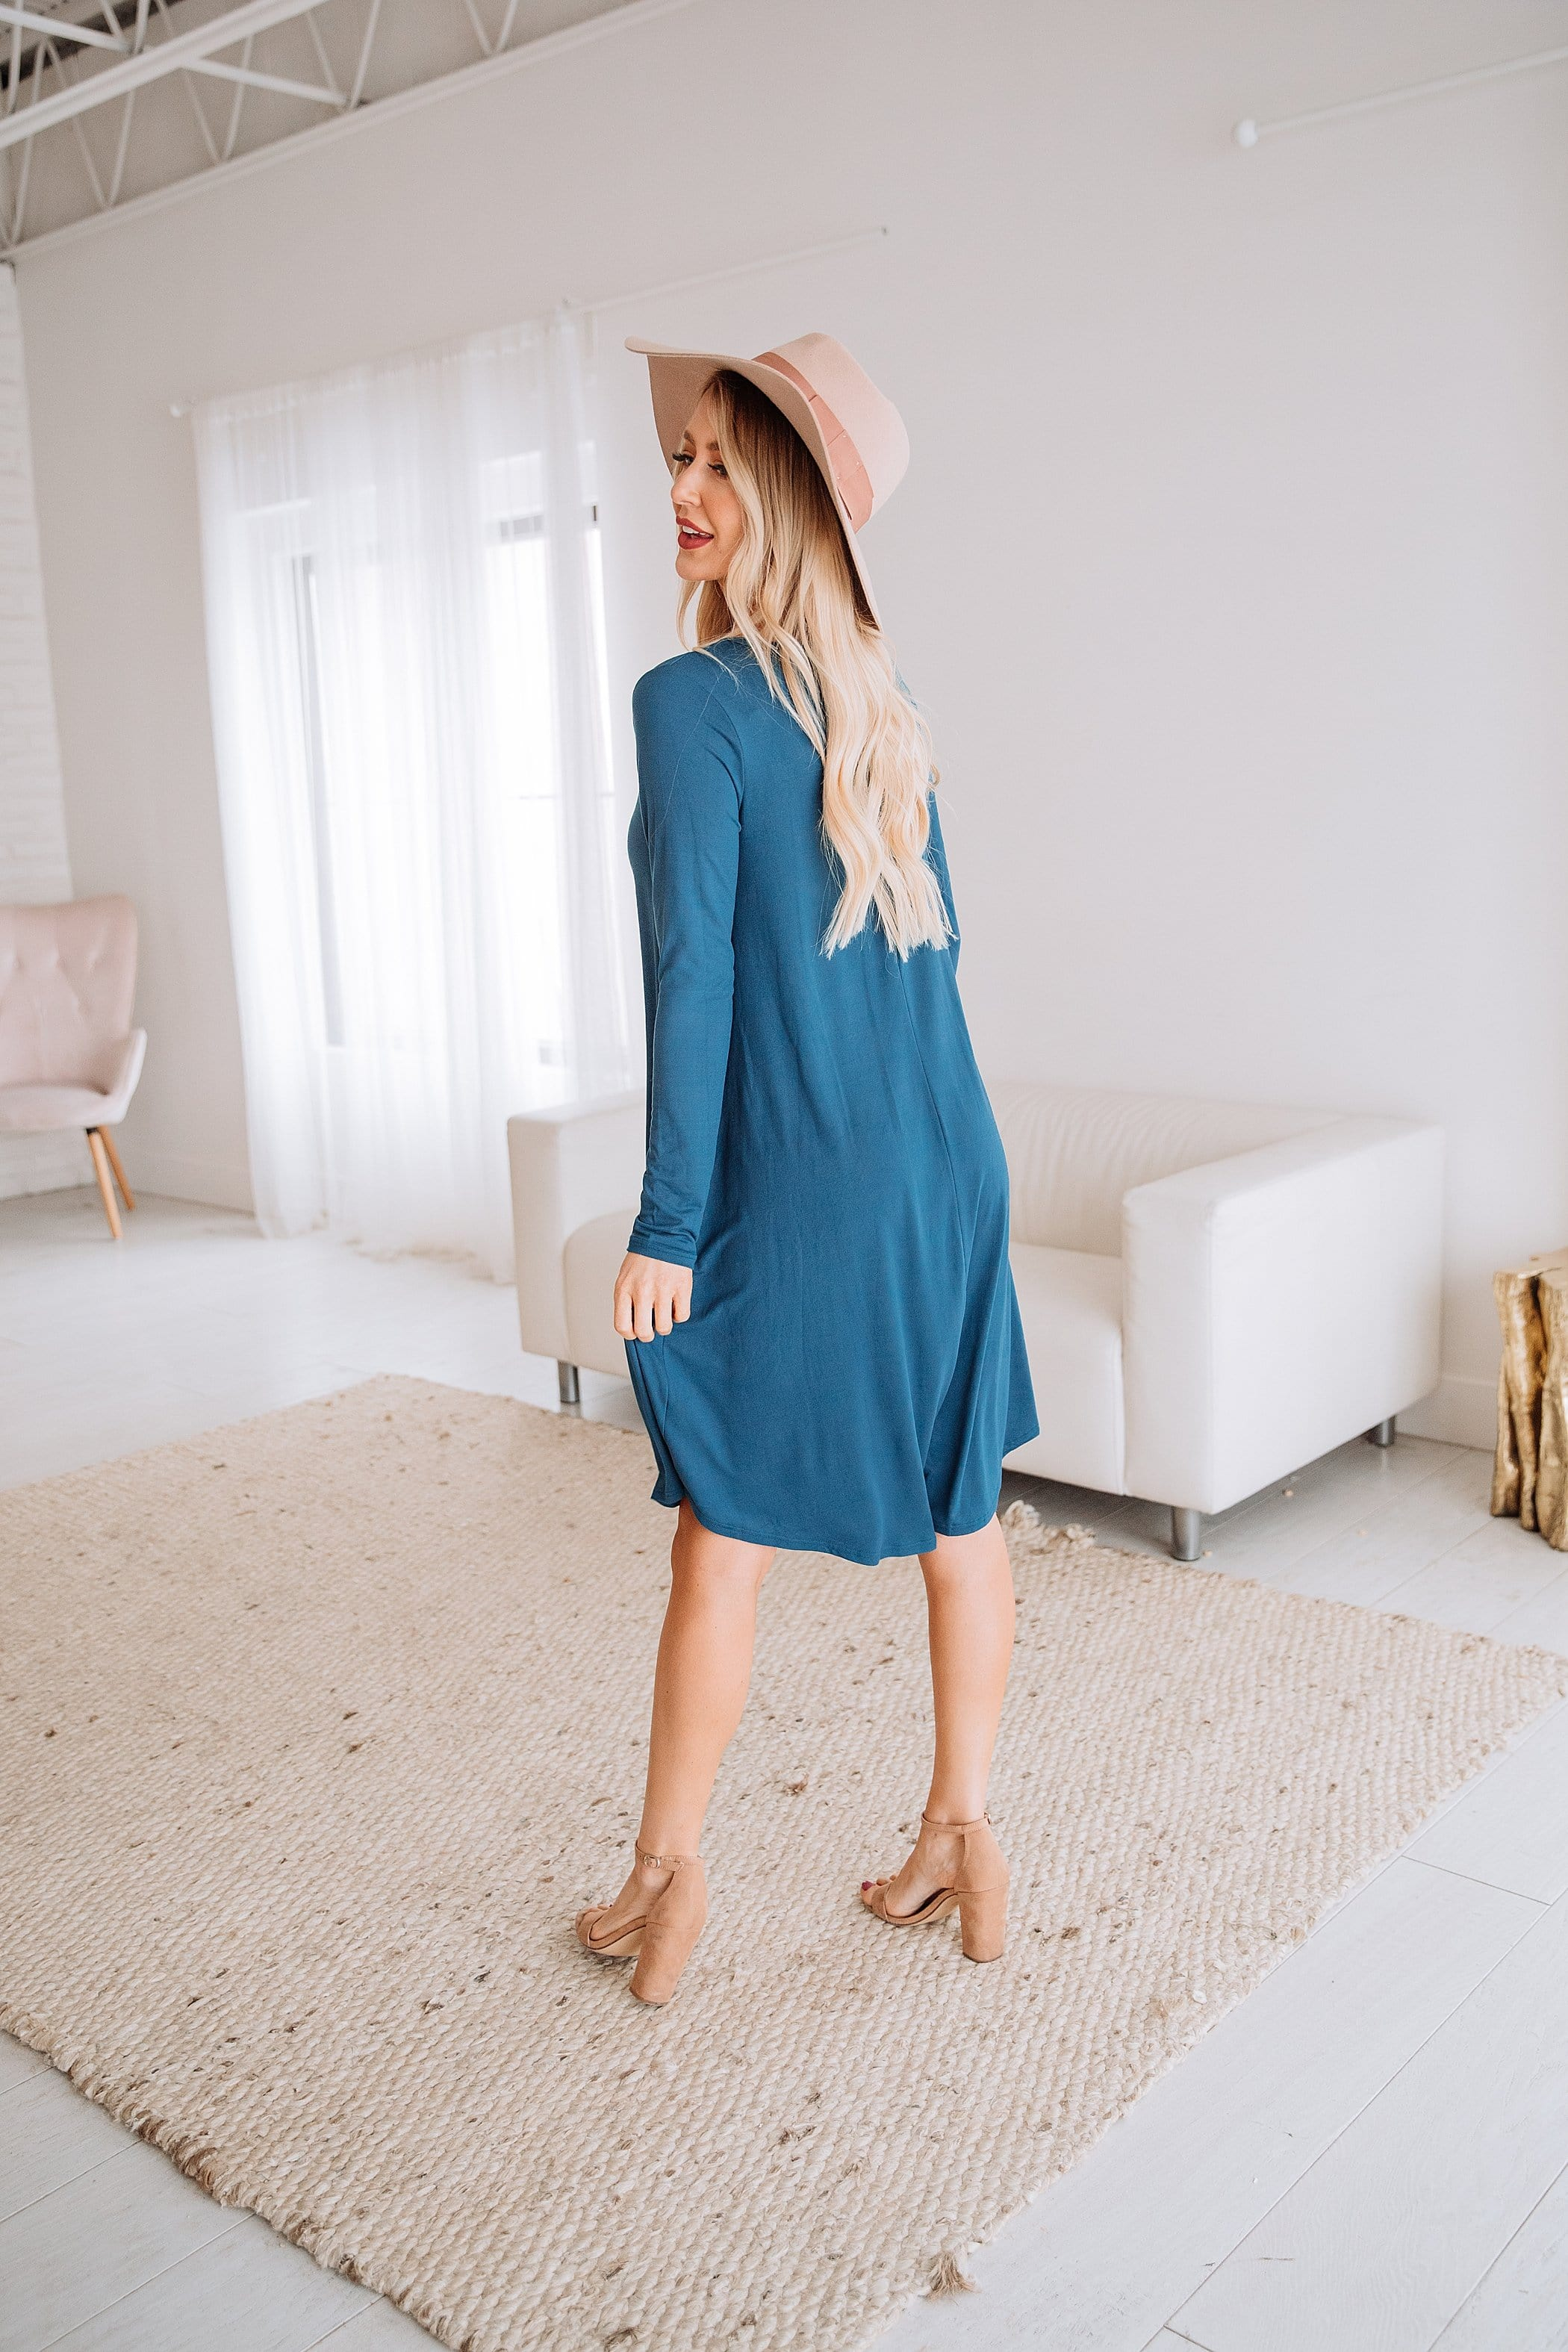 The Albany Midi Dress in Teal and Wine